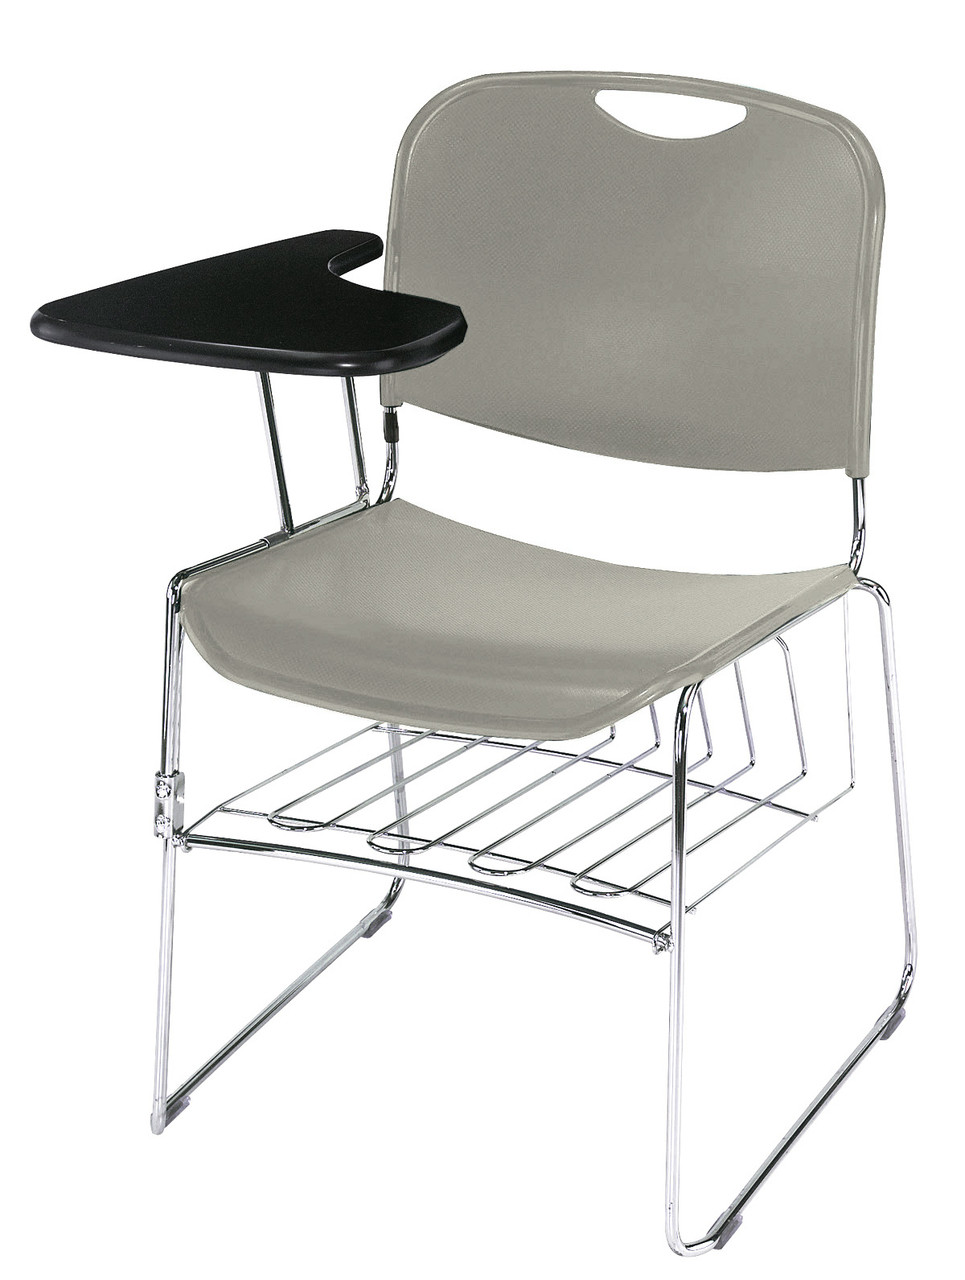 Chair Rack 8500 Series High Tech Ultra Compact Plastic Stacking Chair By National Public Seating